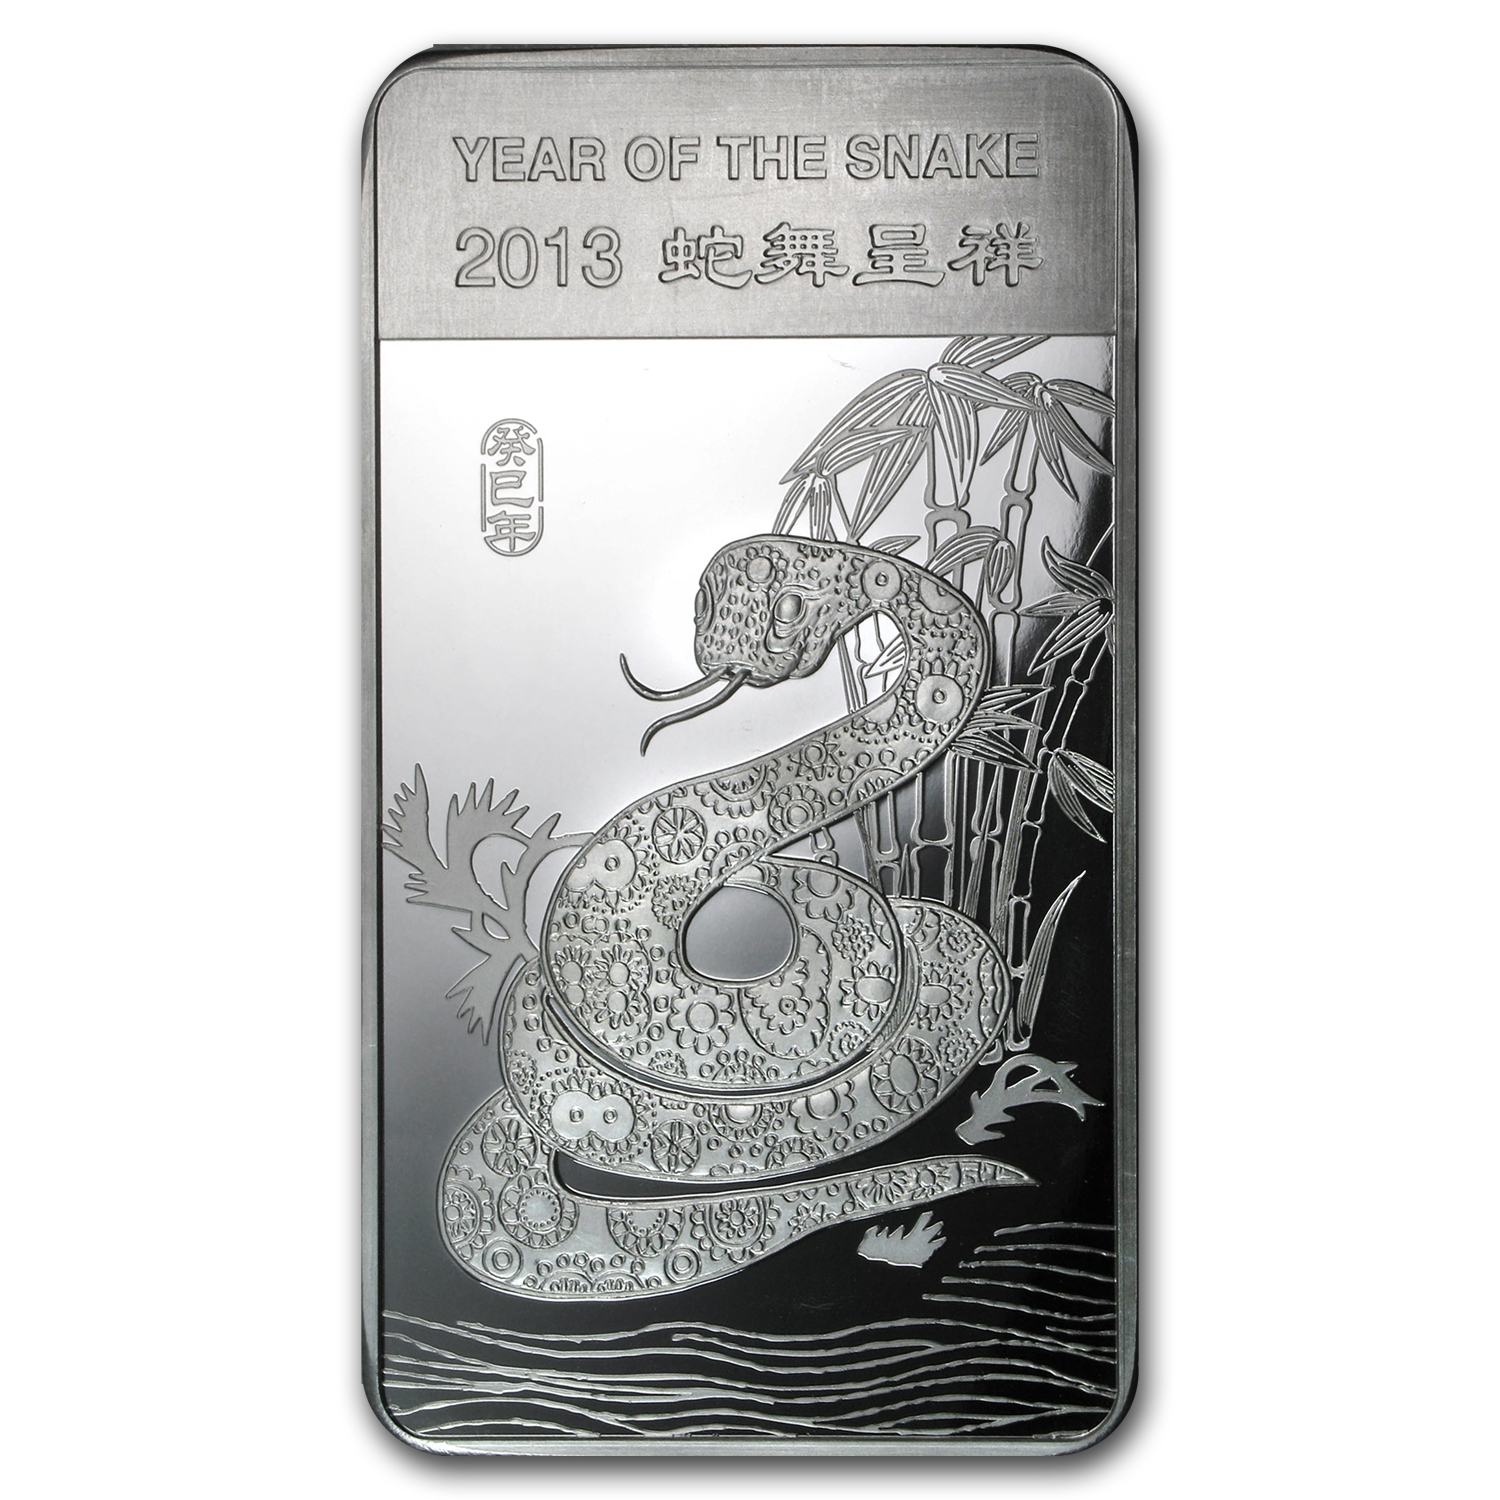 10 oz Silver Bars - APMEX (2013 Year of the Snake)